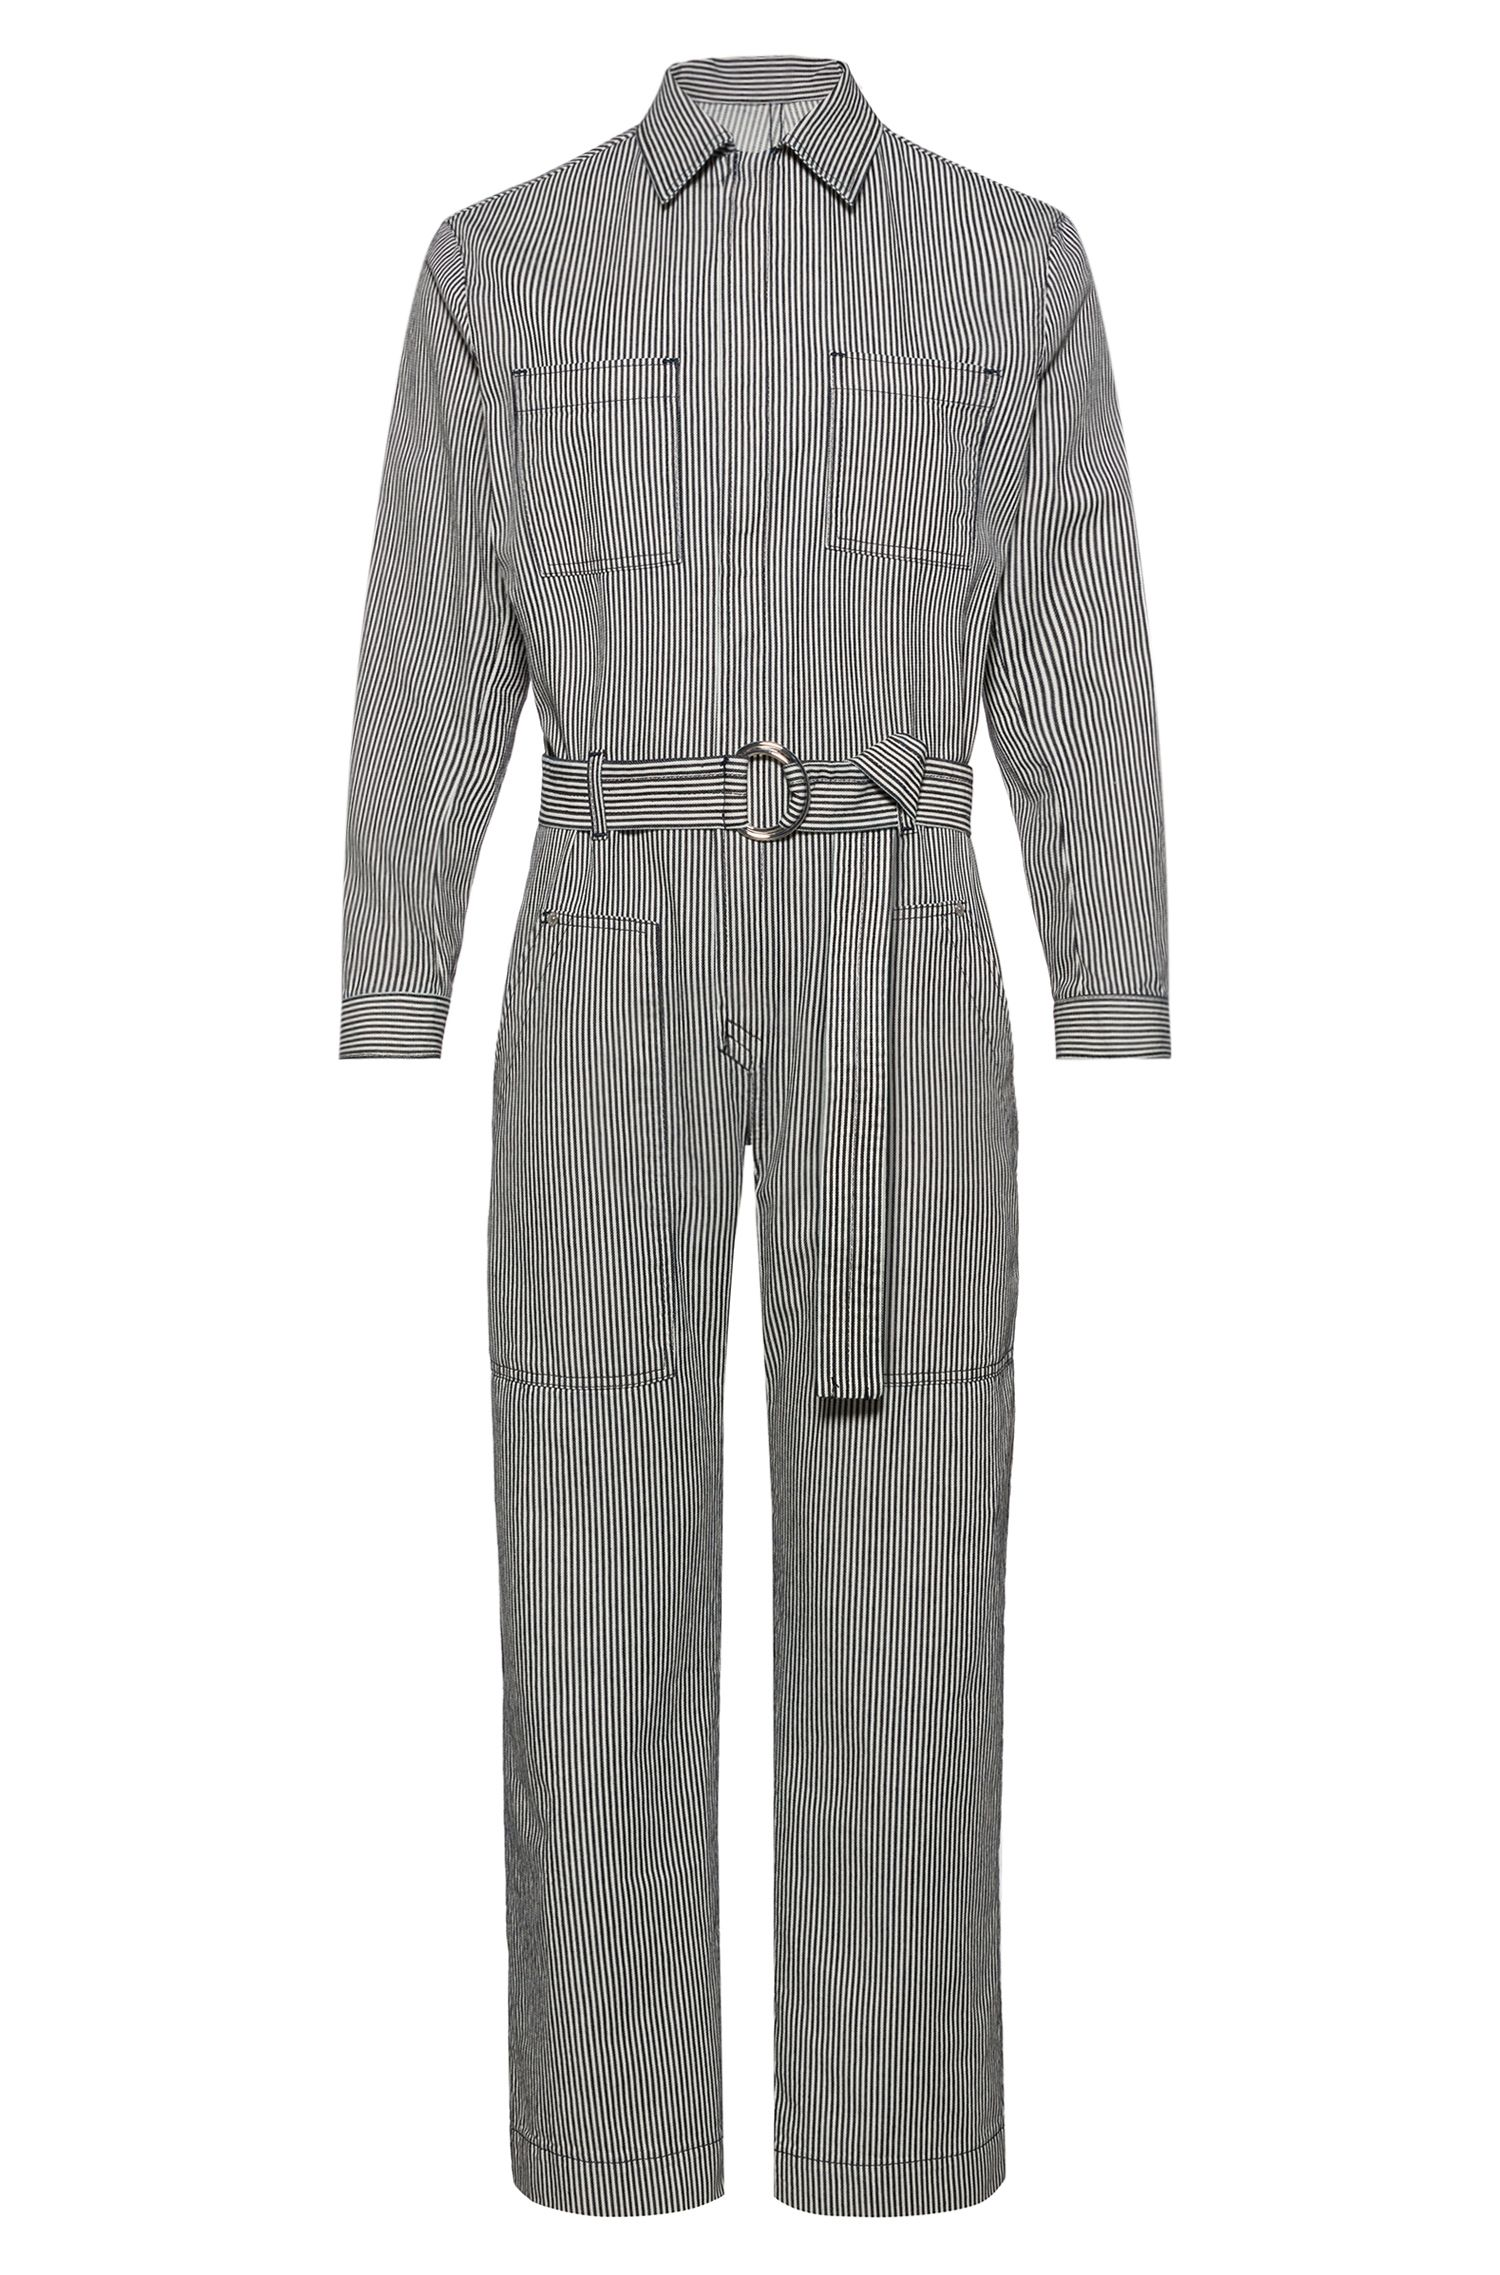 Tuta jumpsuit relaxed fit in denim a righe con tasche, A disegni